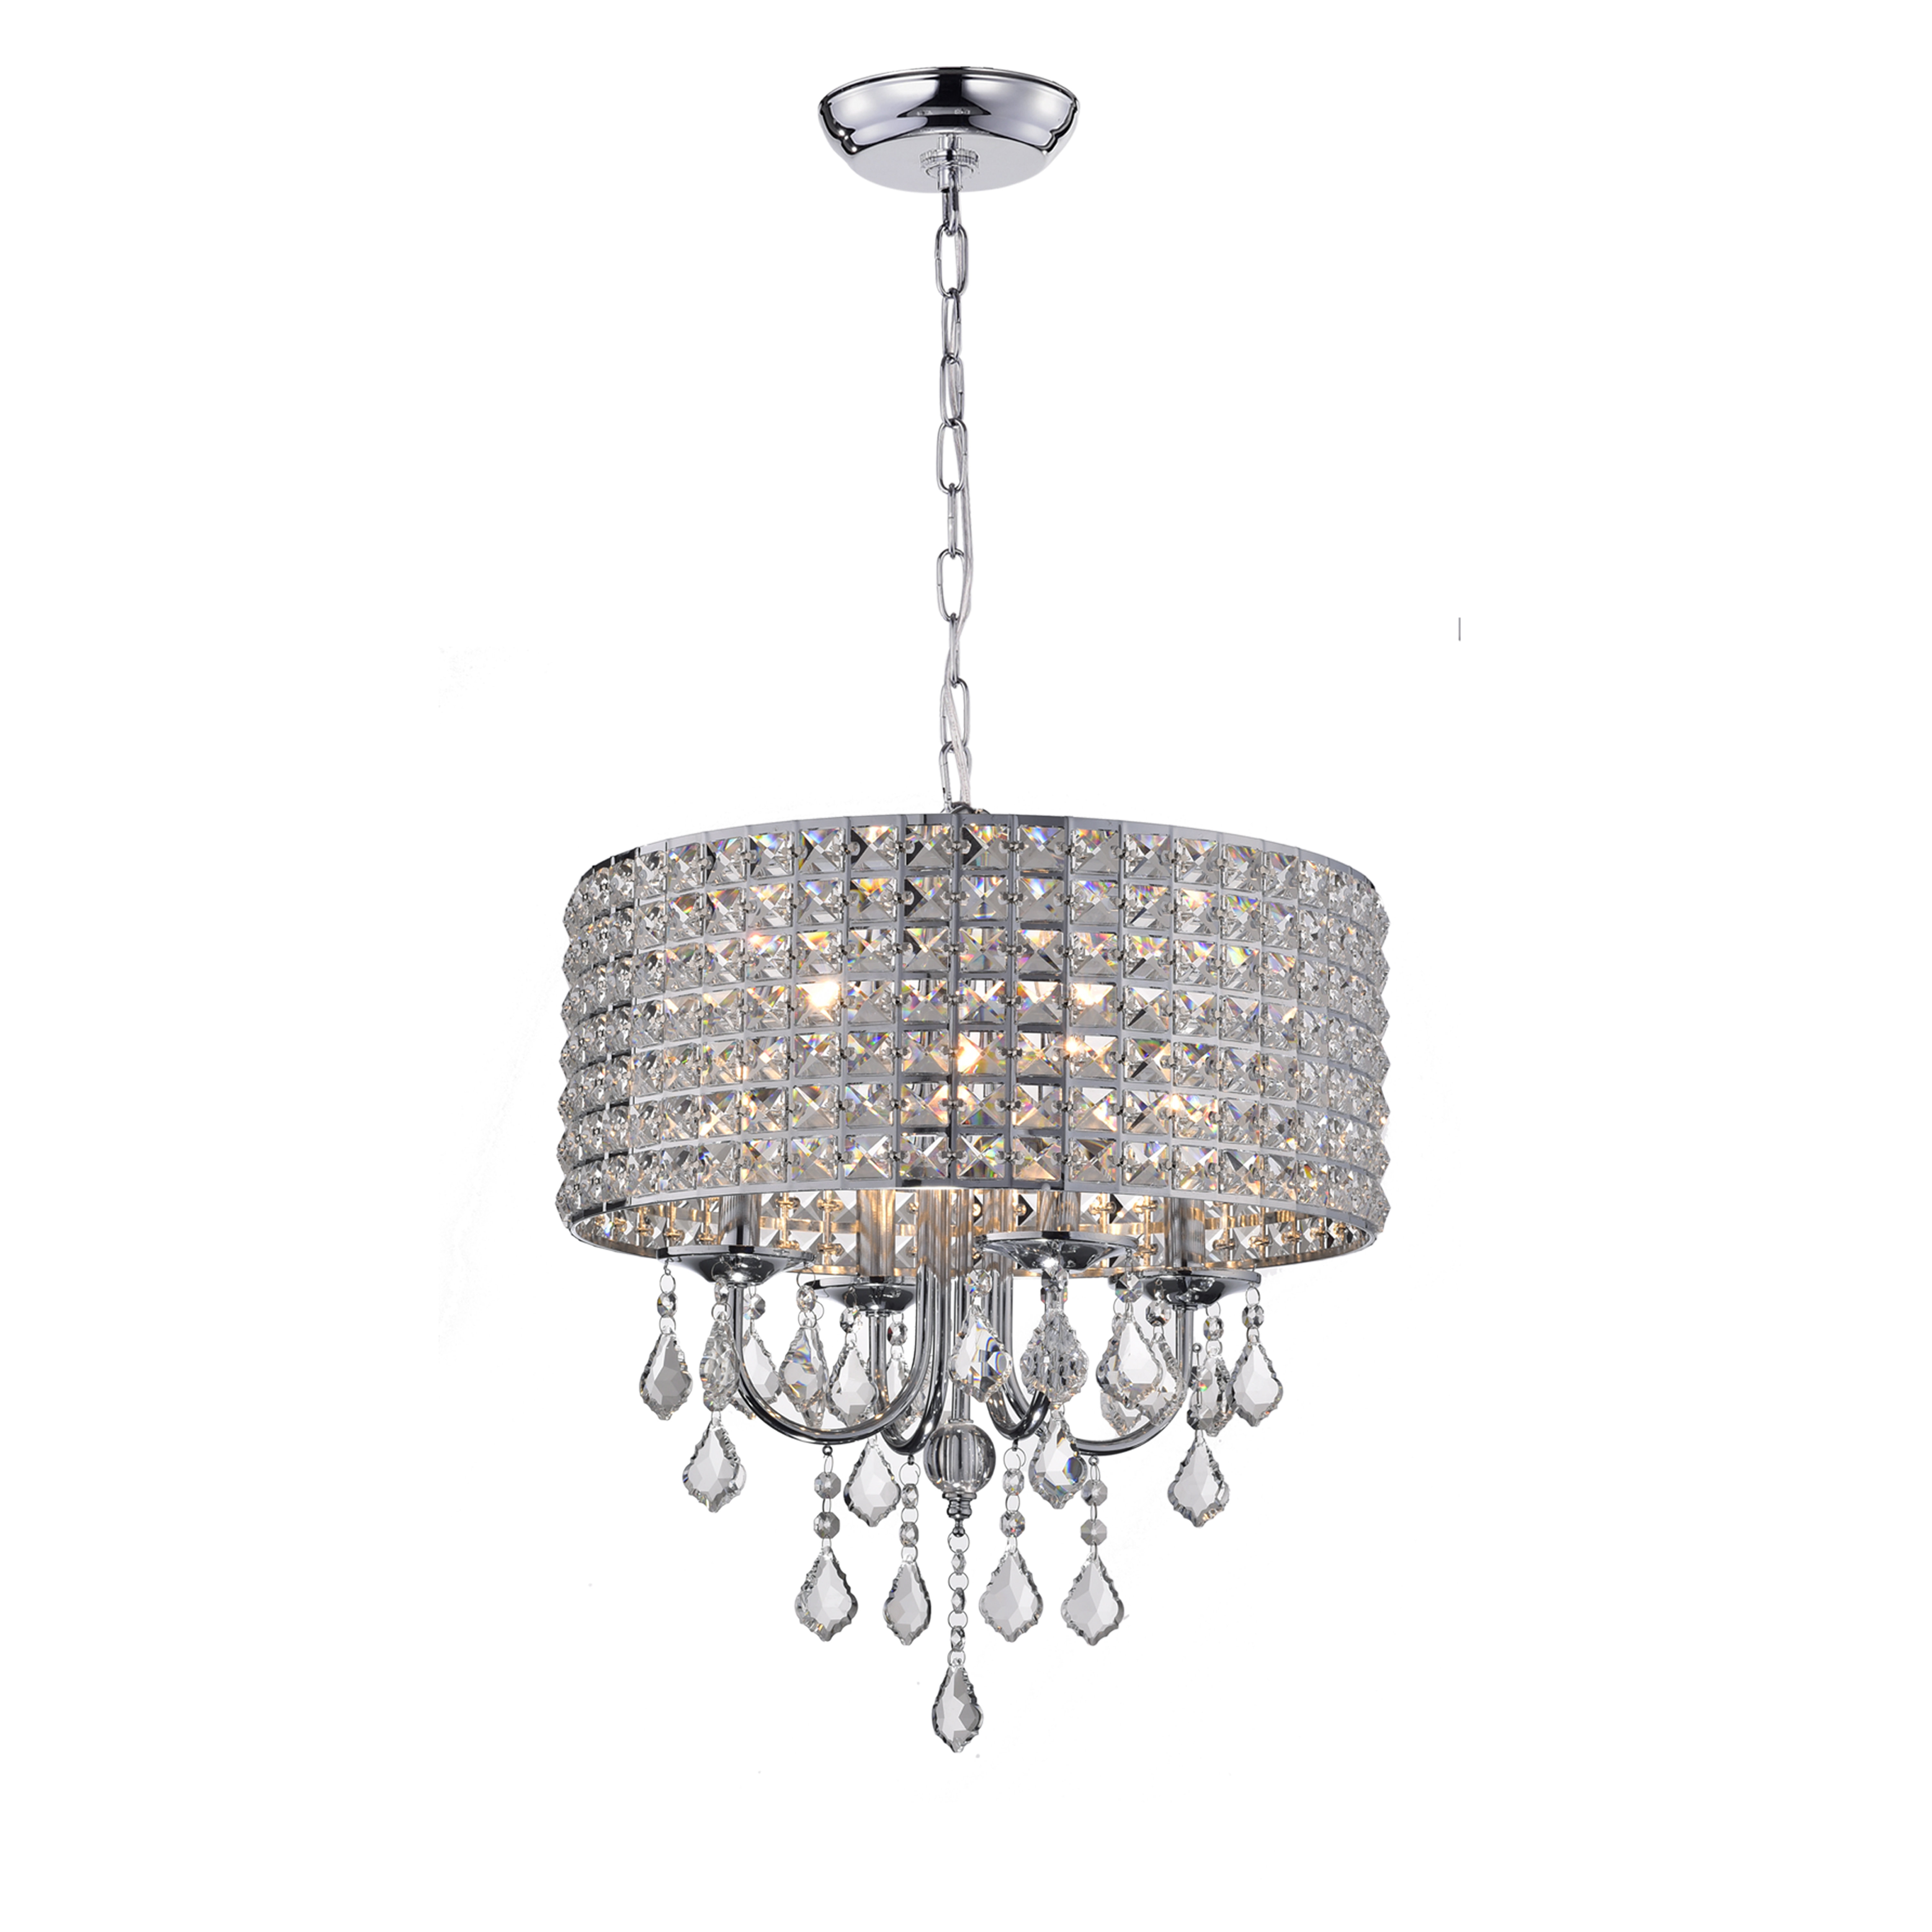 Albano 4 Light Crystal Chandelier Pertaining To Mckamey 4 Light Crystal Chandeliers (View 3 of 30)